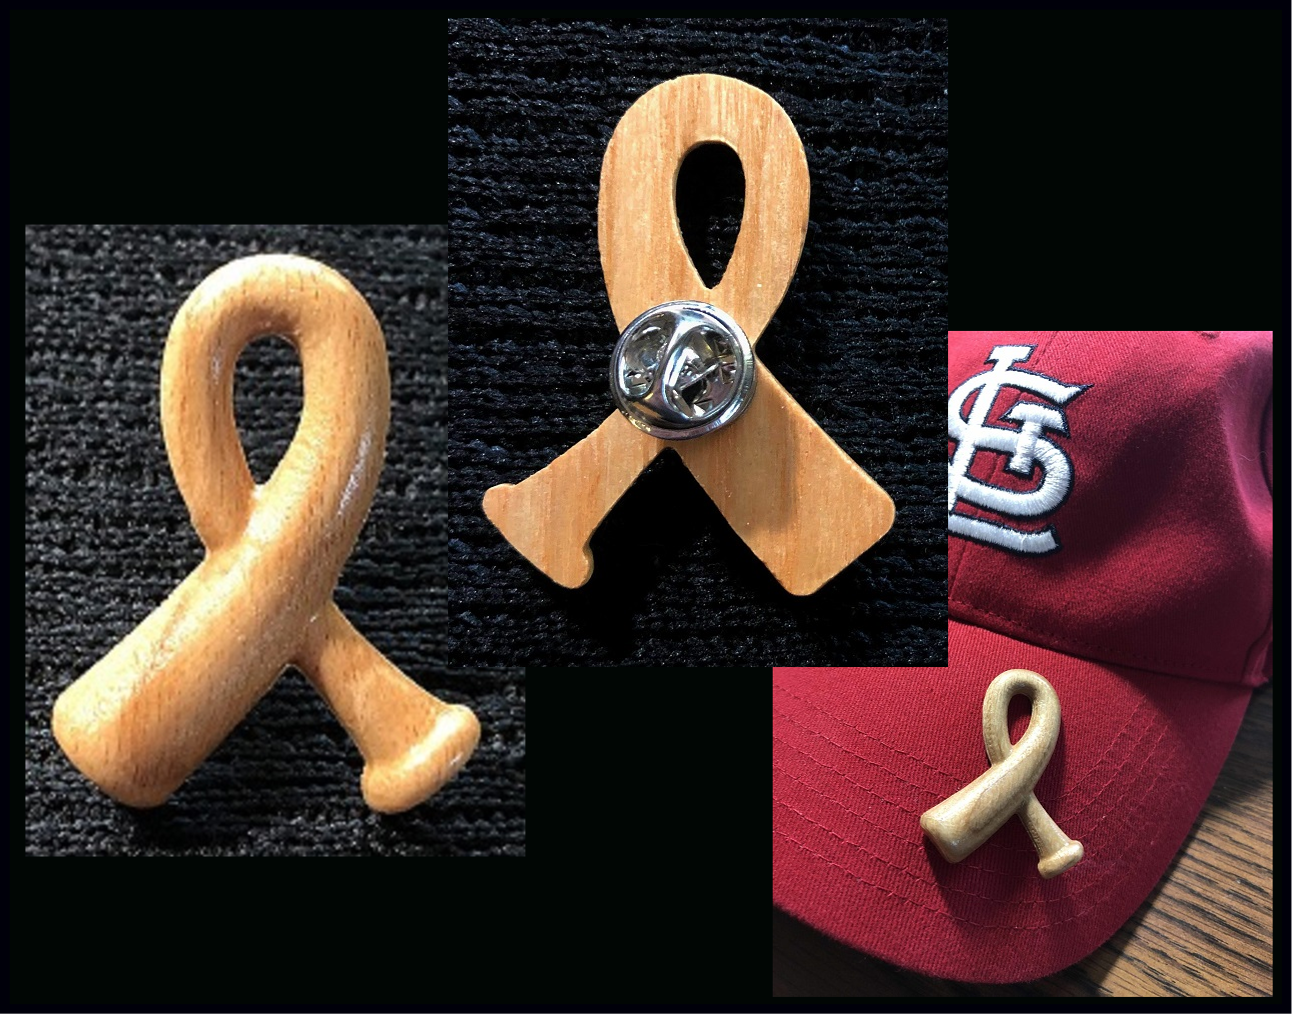 Cancer Awareness Ribbon Bat Pin